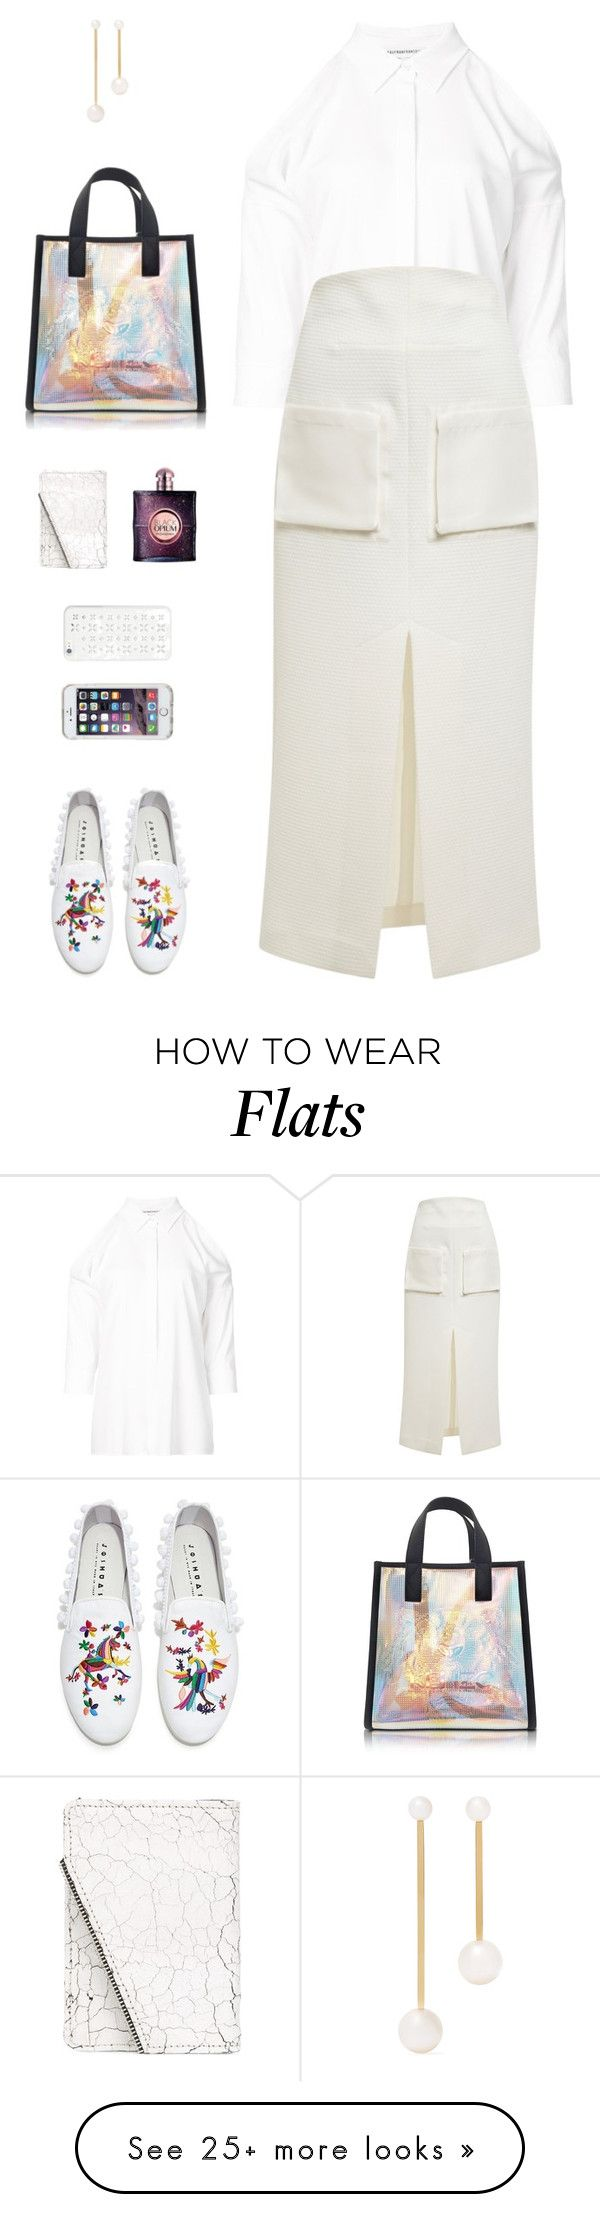 """""""Joshua Sanders Rainbow Embroidery Pom Pom Flats"""" by sol4ange on Polyvore featuring Speck, Joshua's, Kenzo, KaufmanFranco, E L L E R Y, Sophie Bille Brahe, South Lane, Yves Saint Laurent and MICHAEL Michael Kors"""